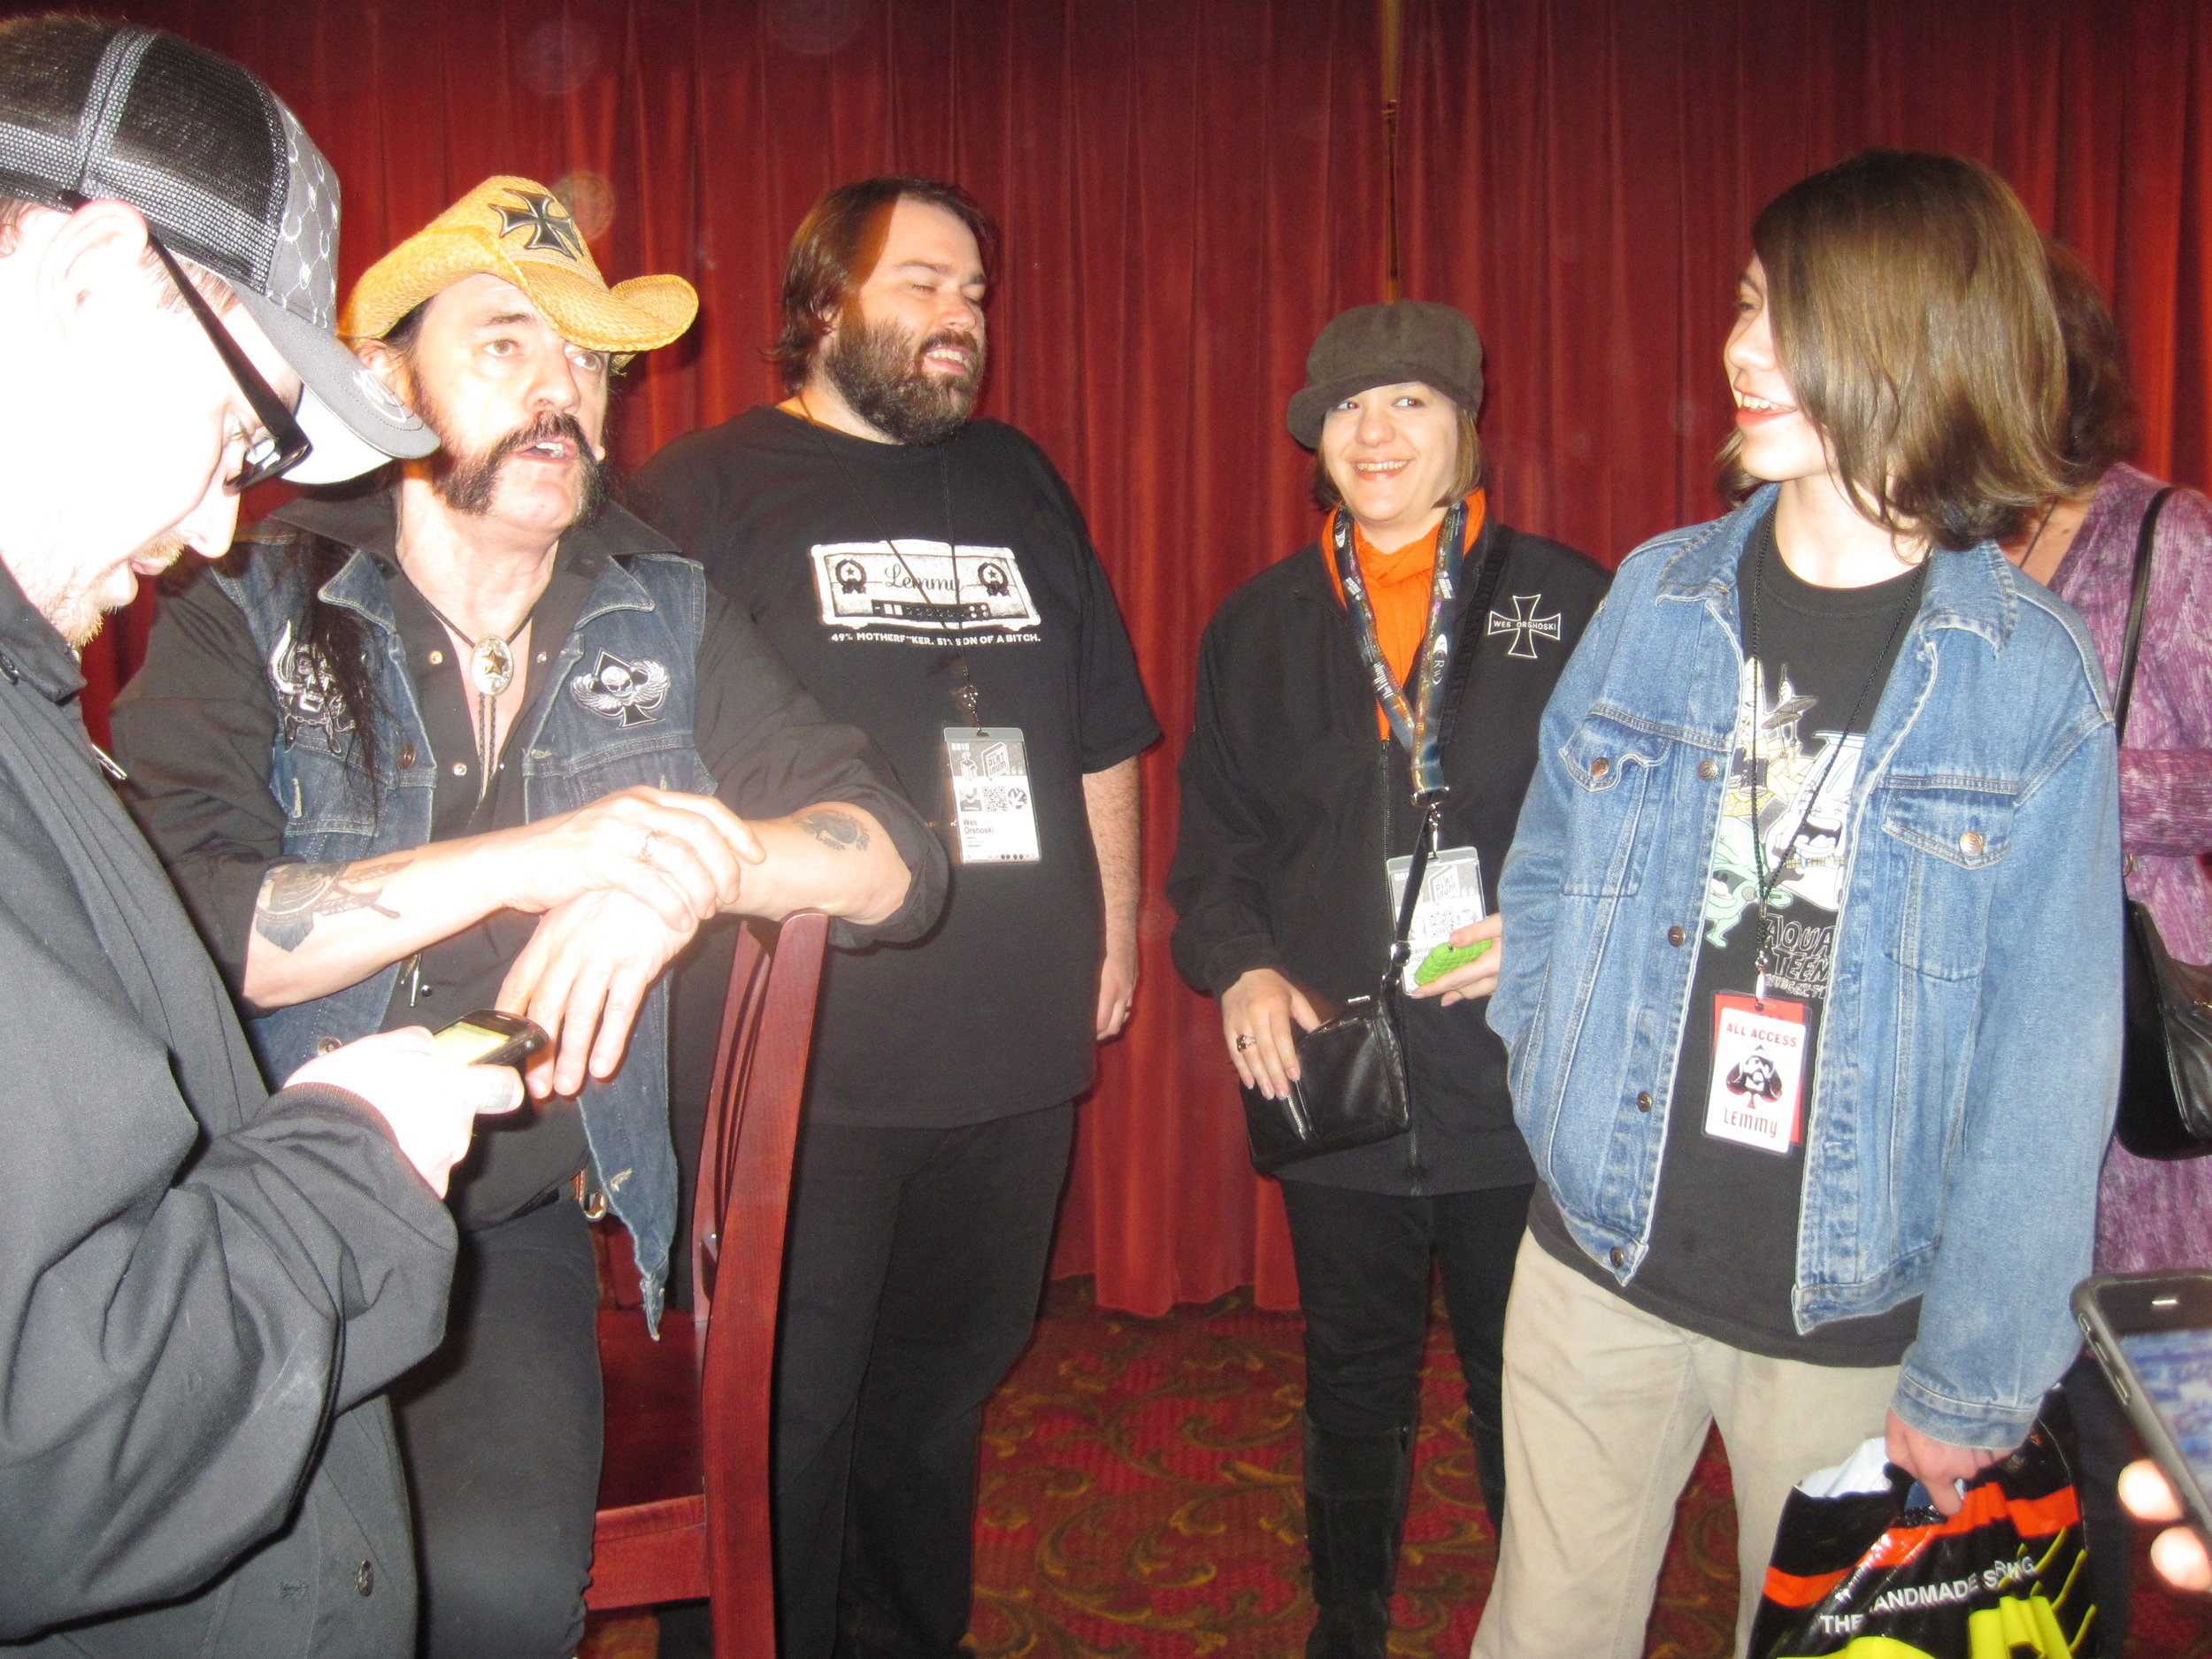 Backstage after the Lemmy film premiere.